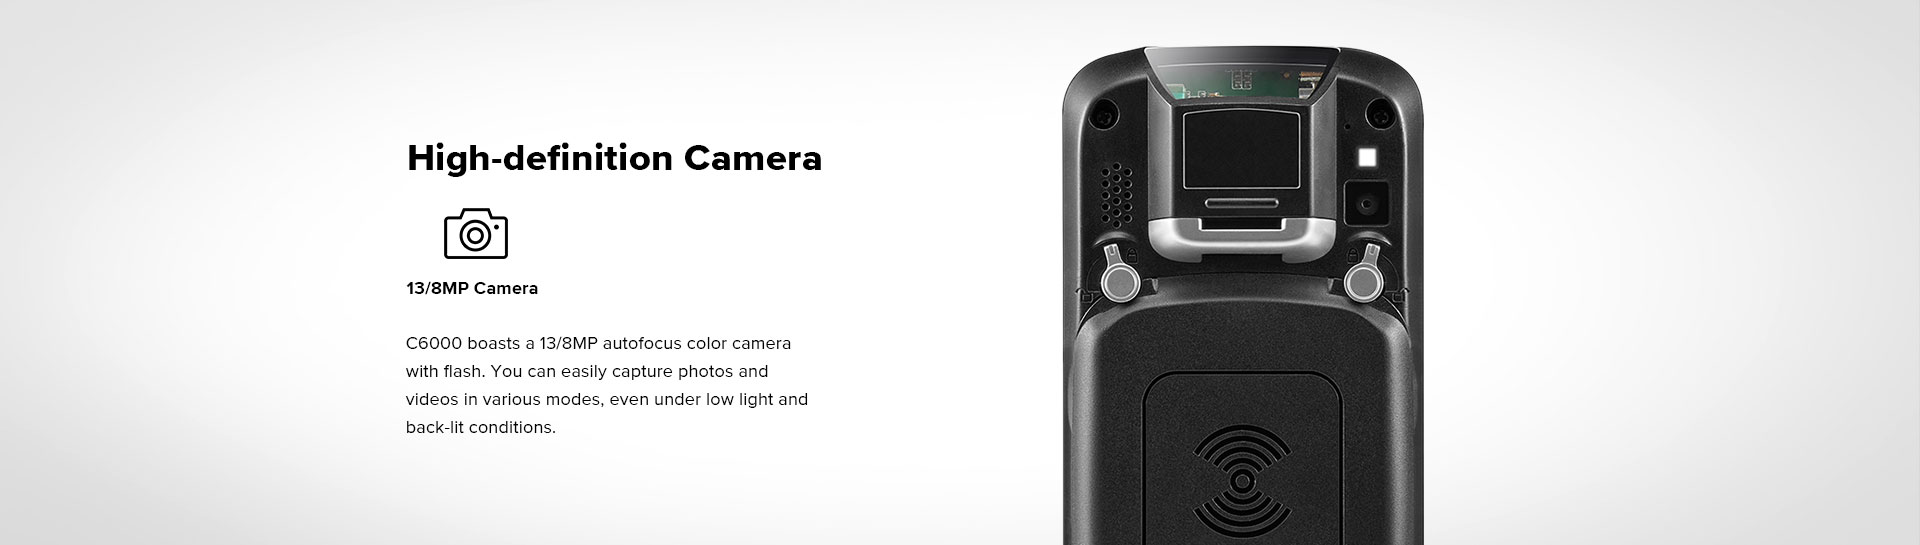 C6000 Rugged Handheld Computer Android - 13/8 MP camera